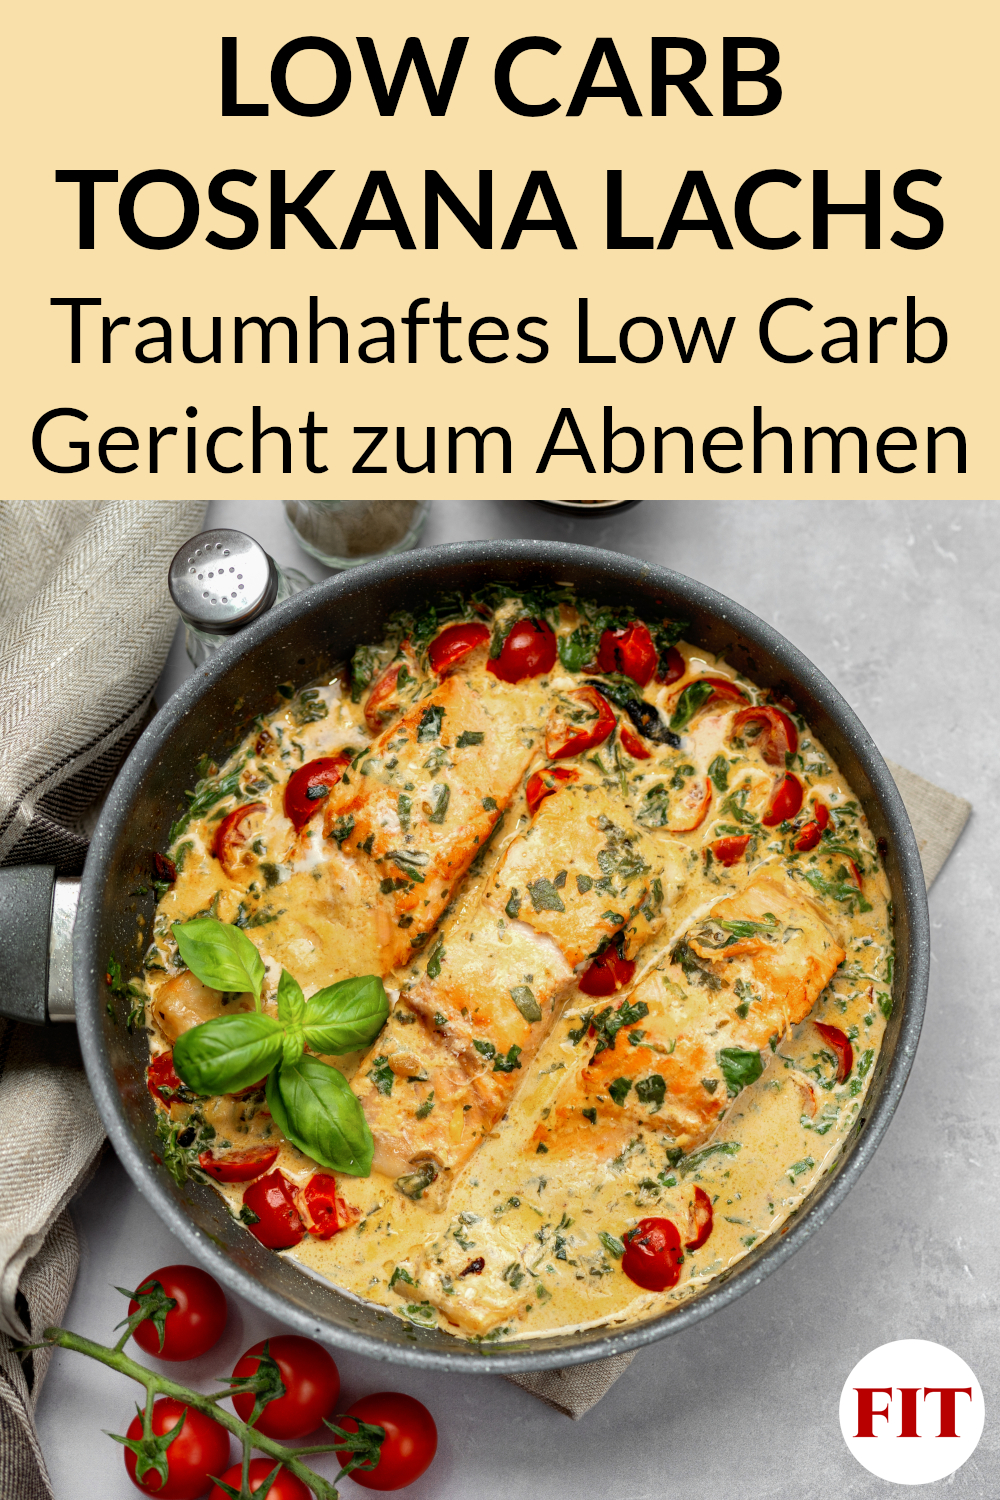 Low Carb Toskana Lachs